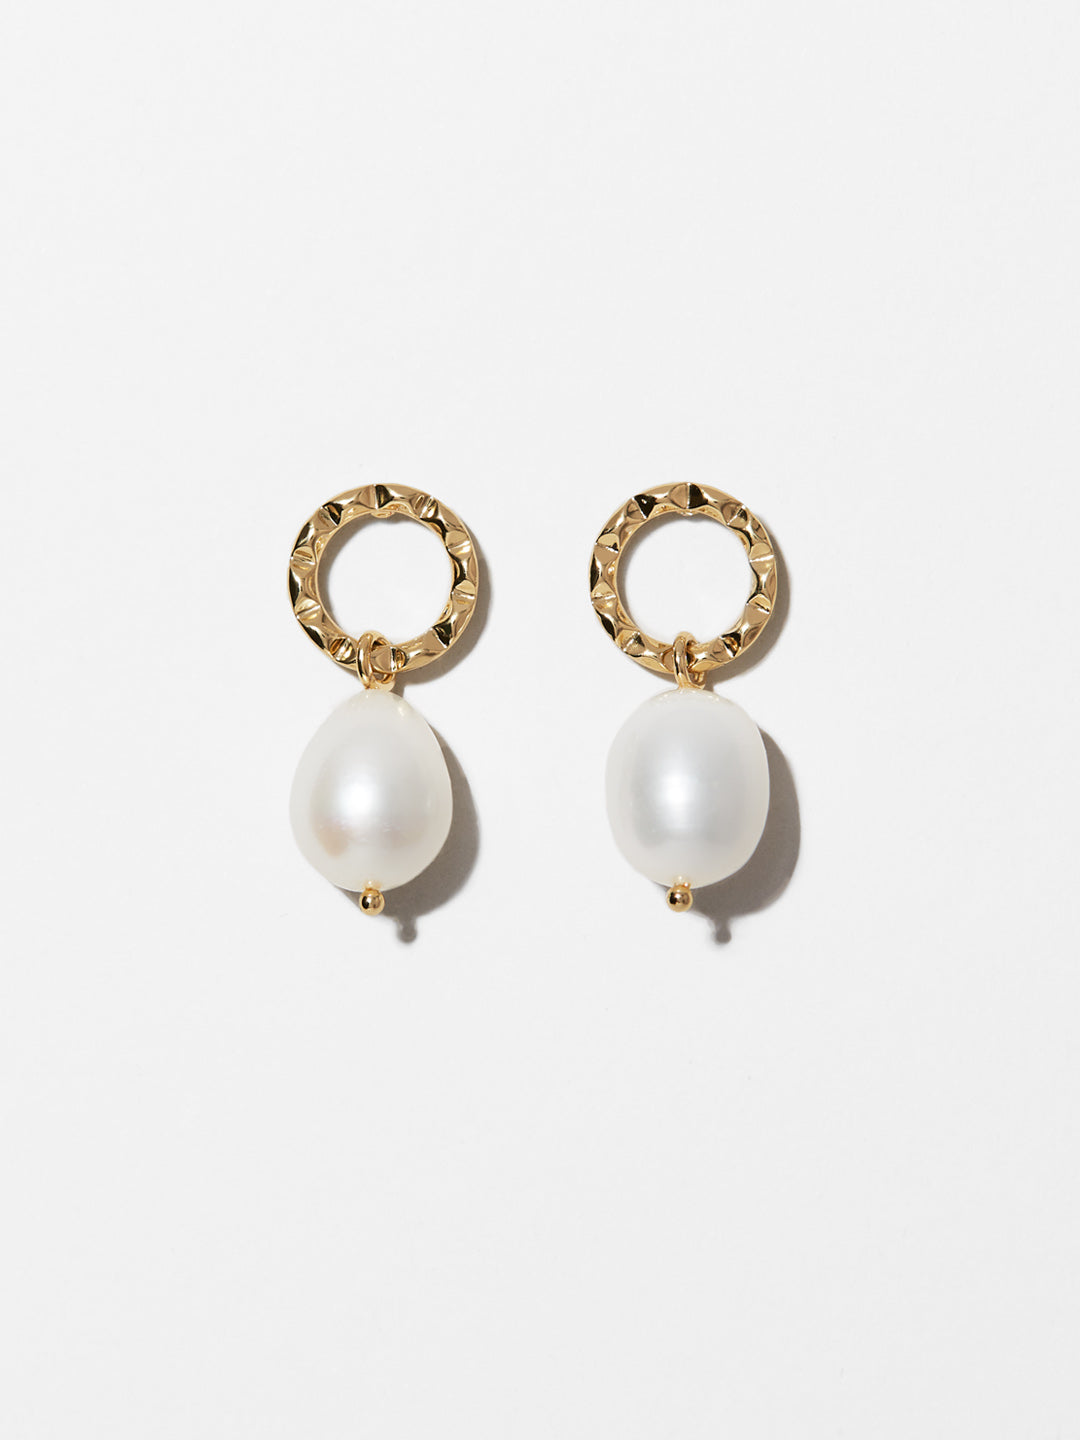 Ana Luisa Earrings Studs Delicate Earrings Hope Pearl Gold